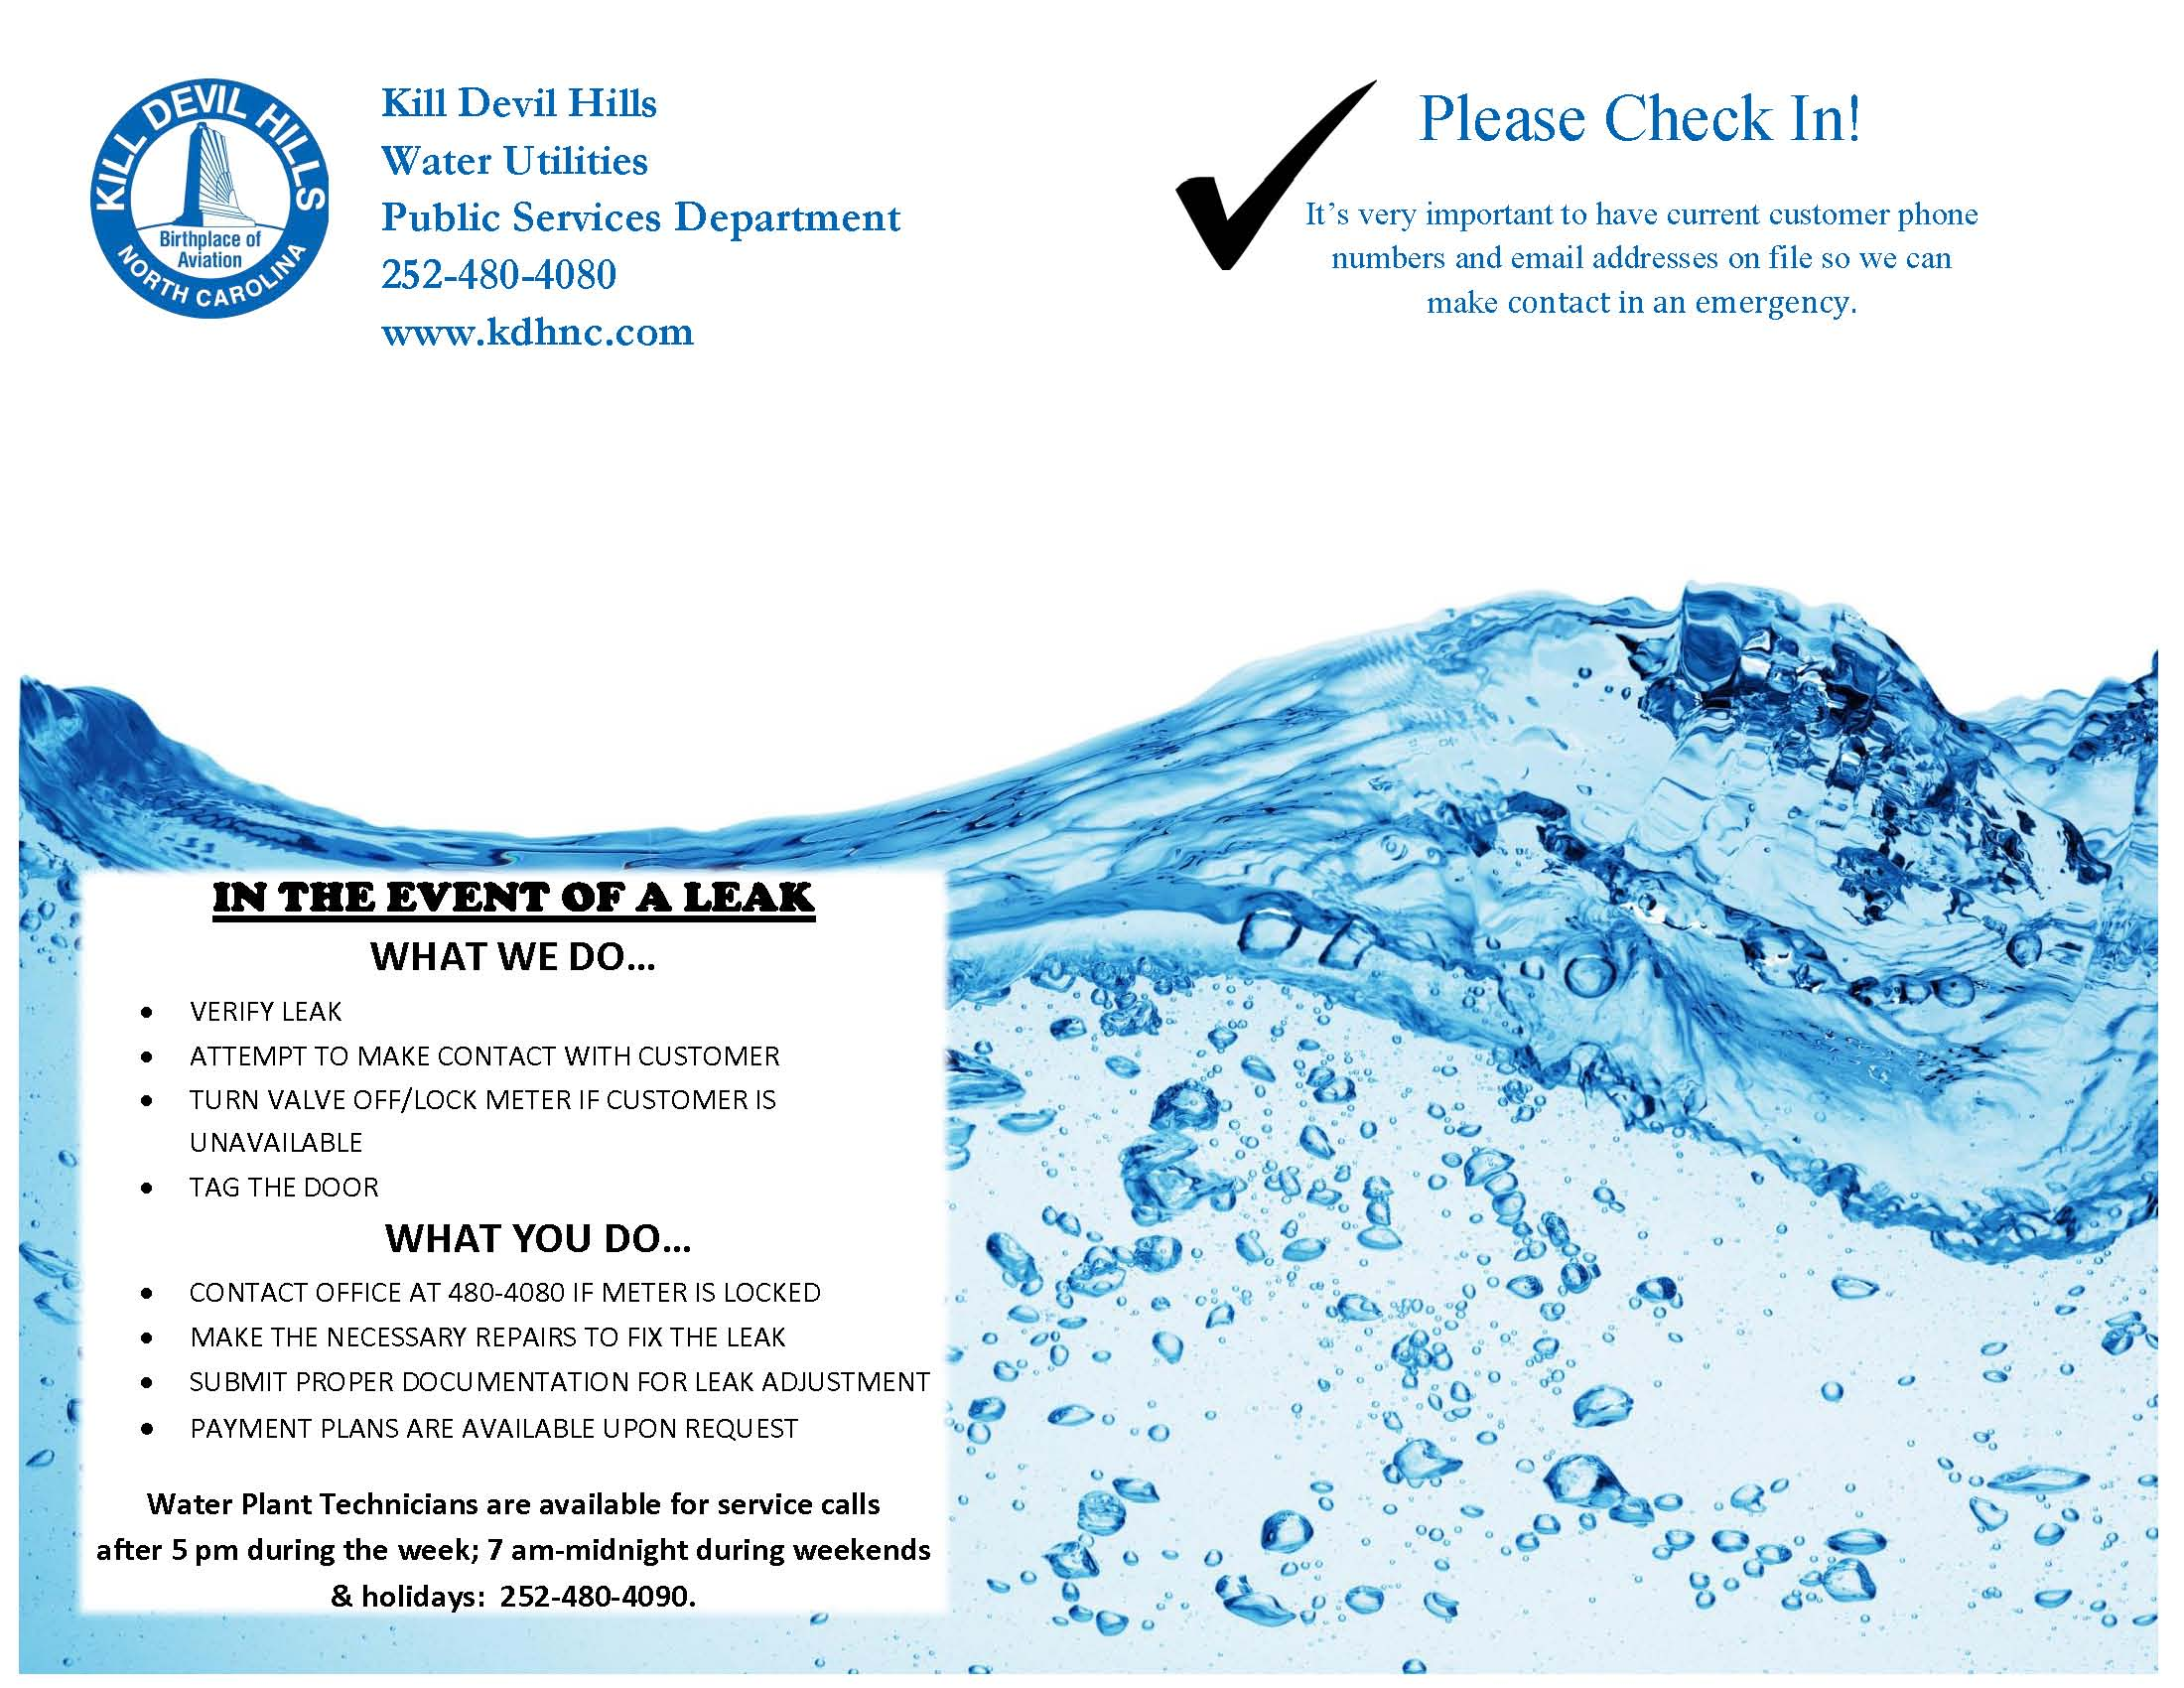 2016 Water Utilities Flyer_Page_2